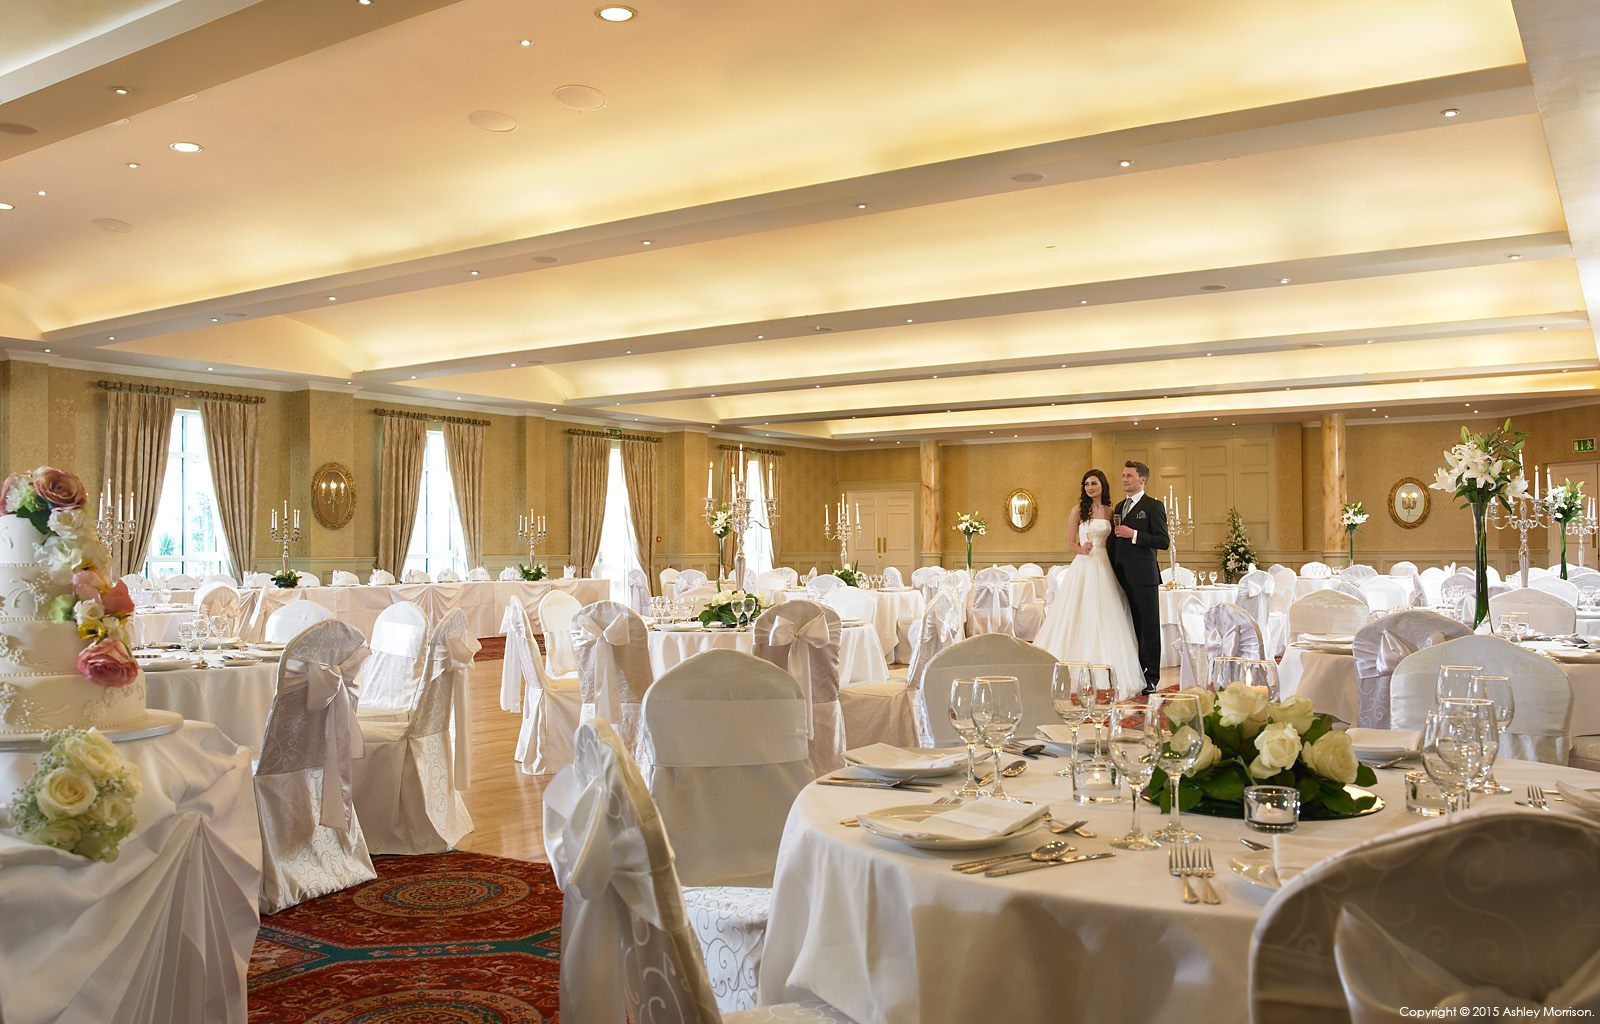 The Lettermore ballroom suite at the Galway Bay Hotel in Salthill.